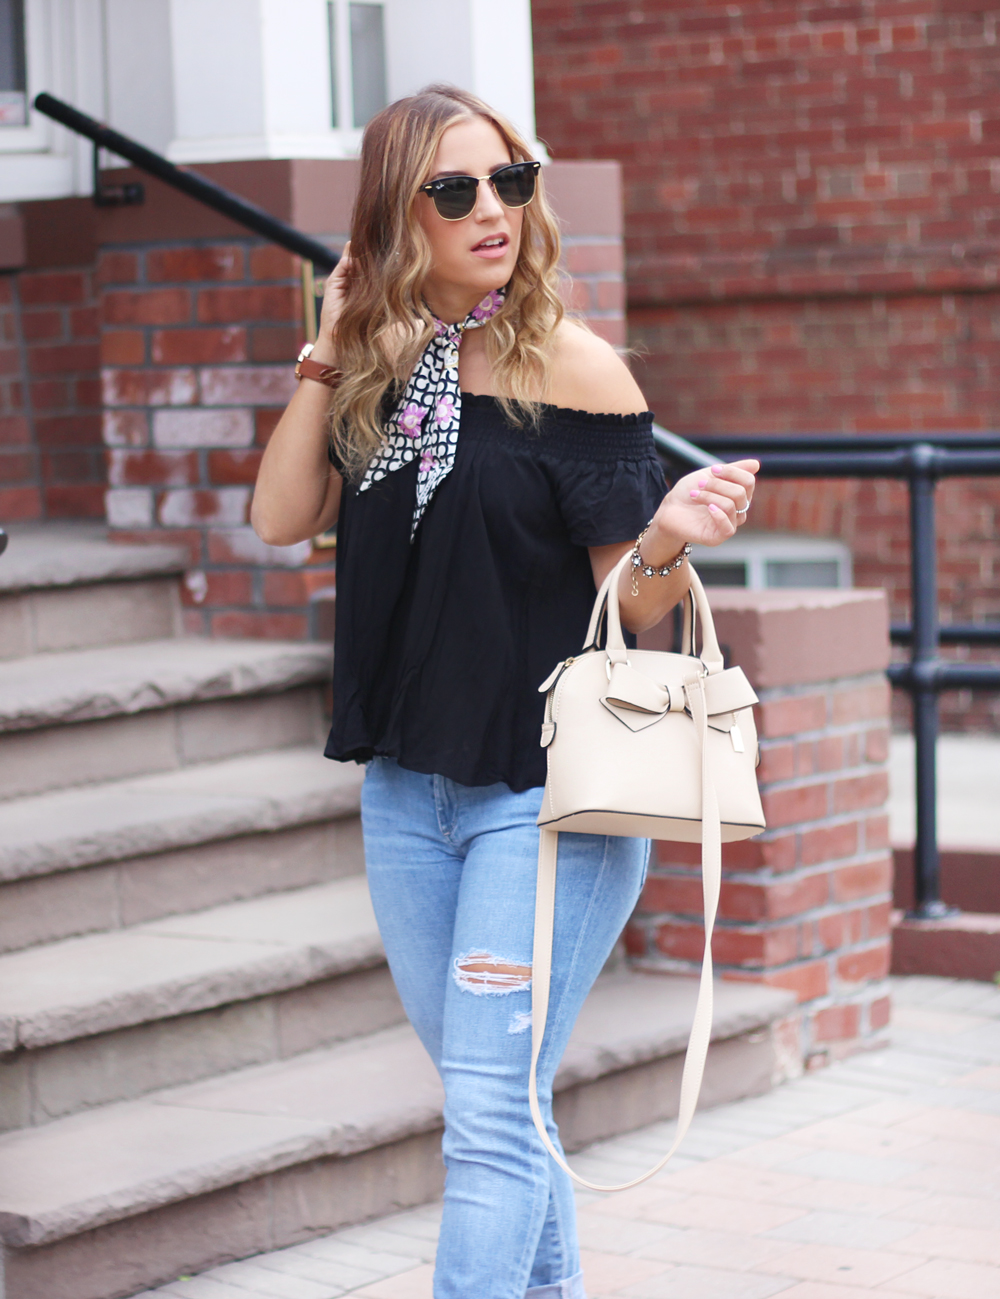 Off the shoulder top from Aritzia